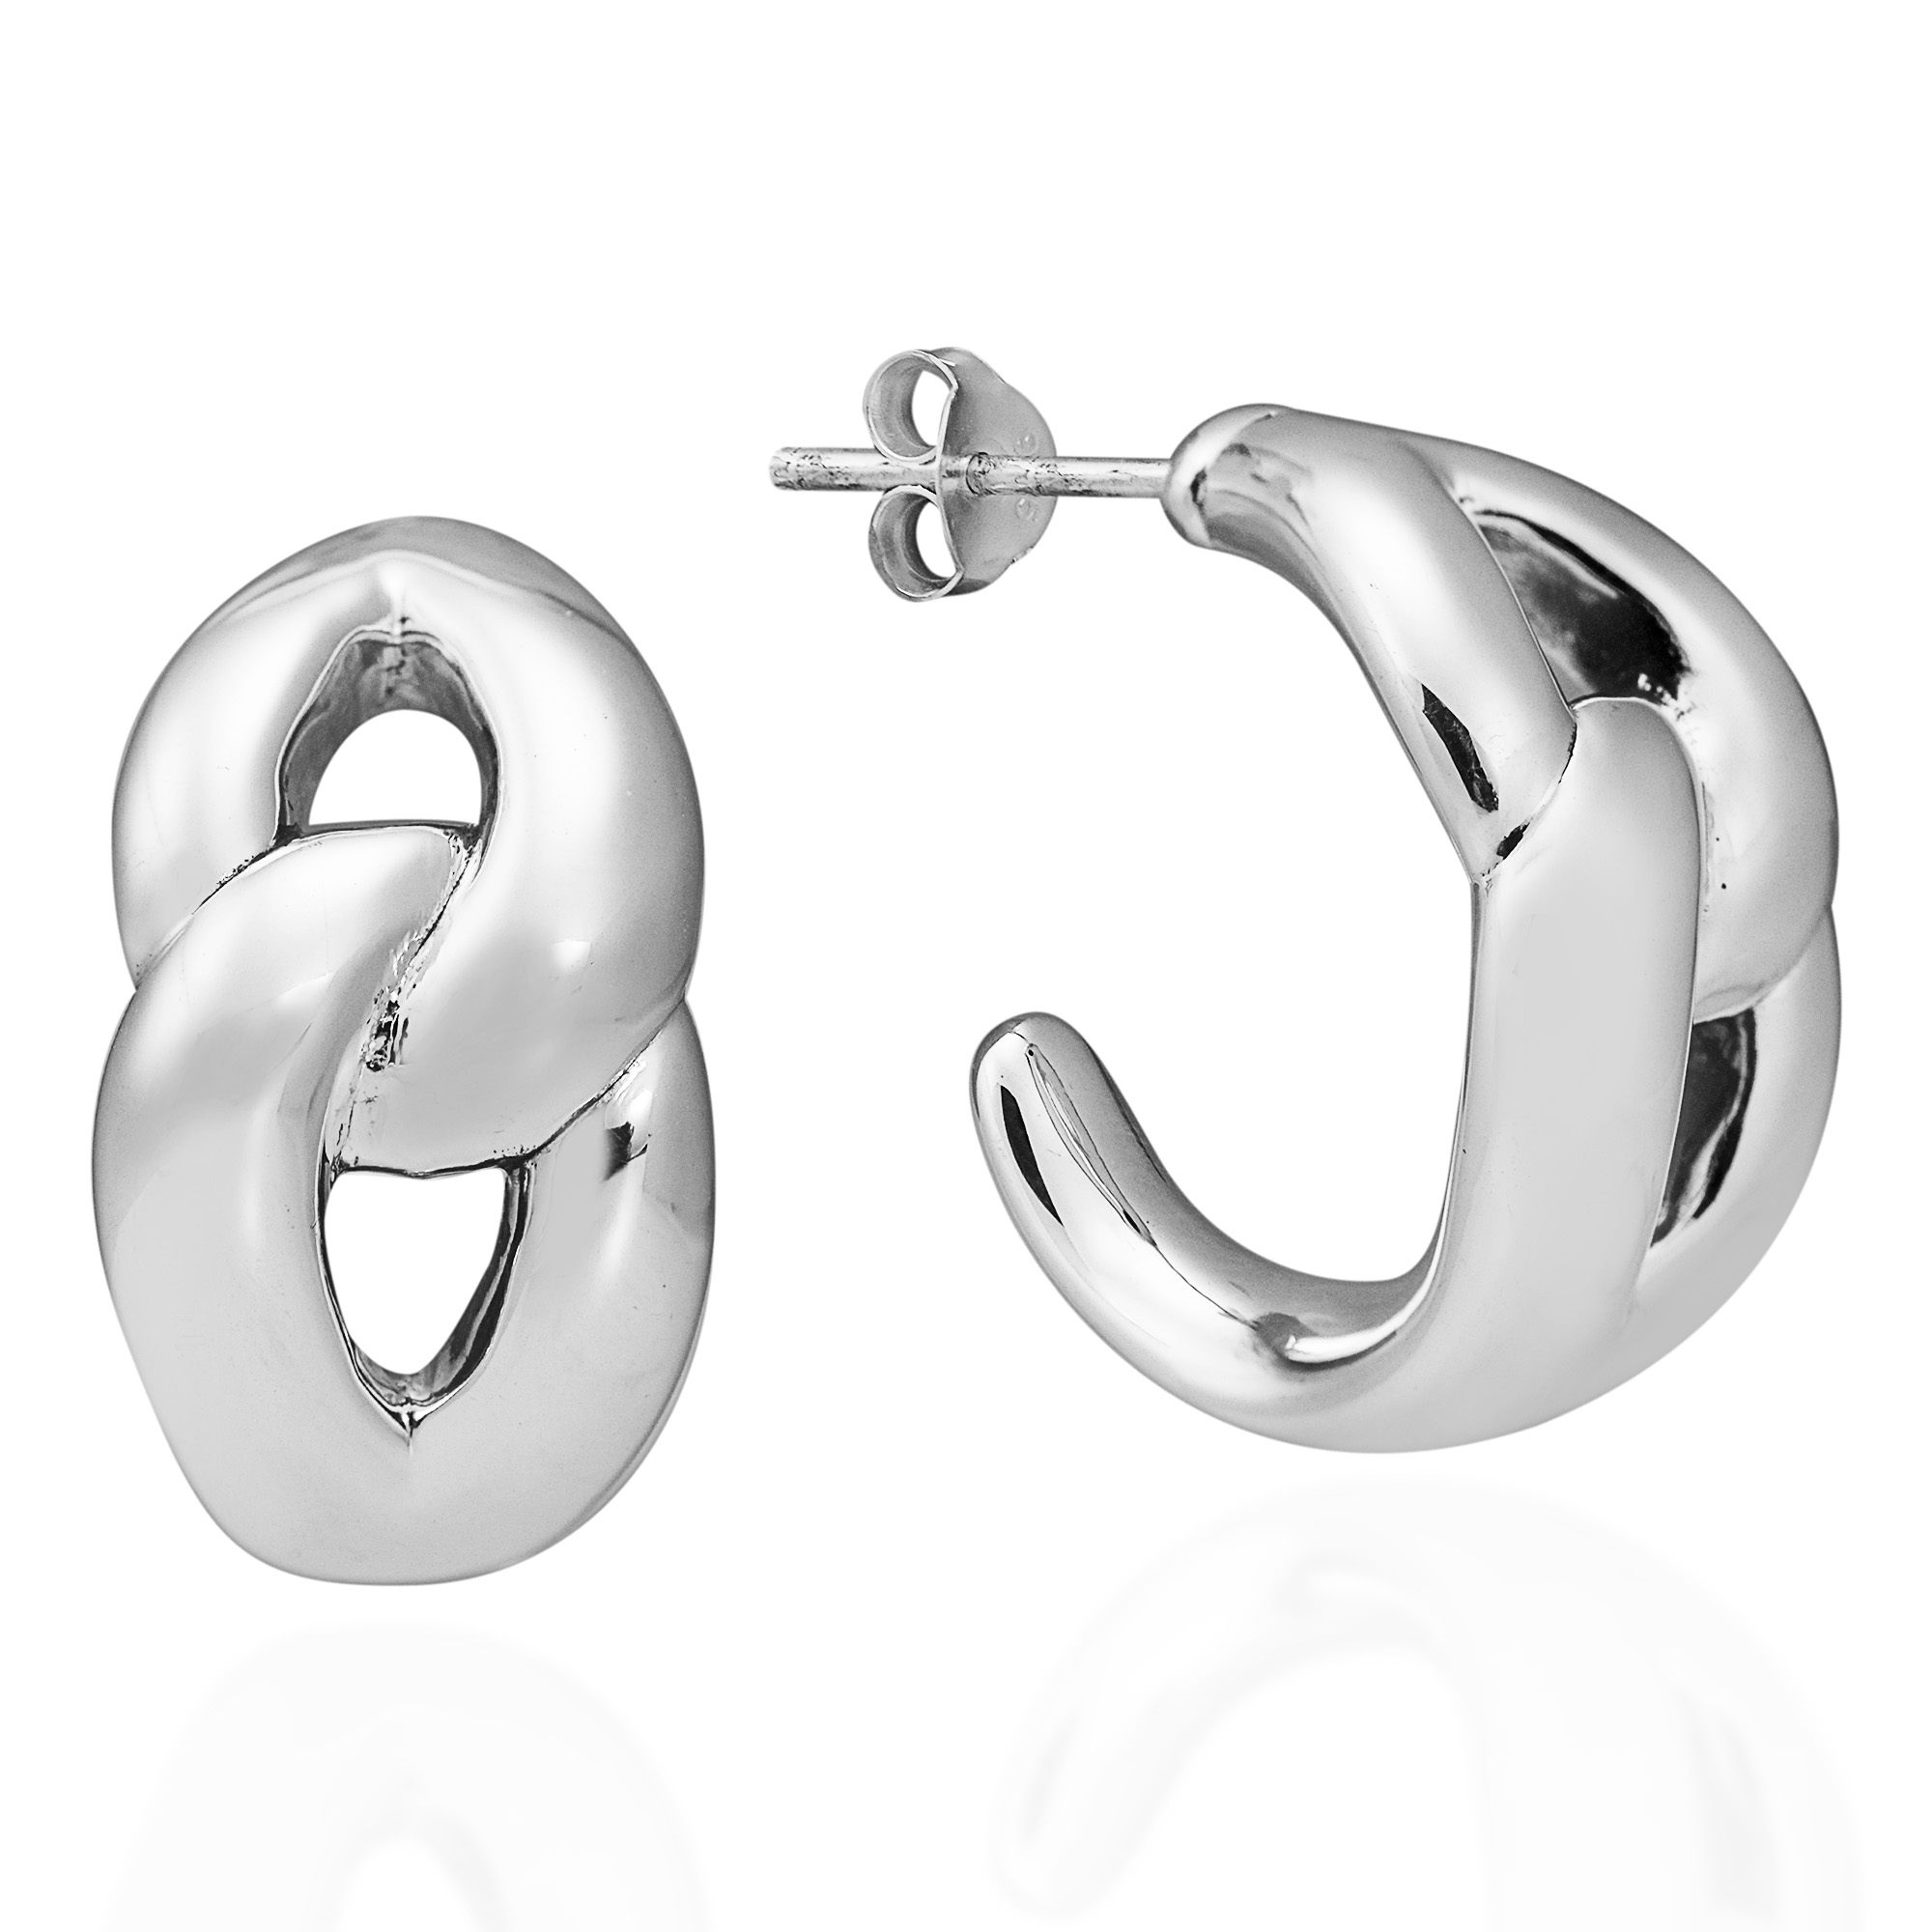 oval contemporary pin designer by annabet jewellery irregular wyndham earrings